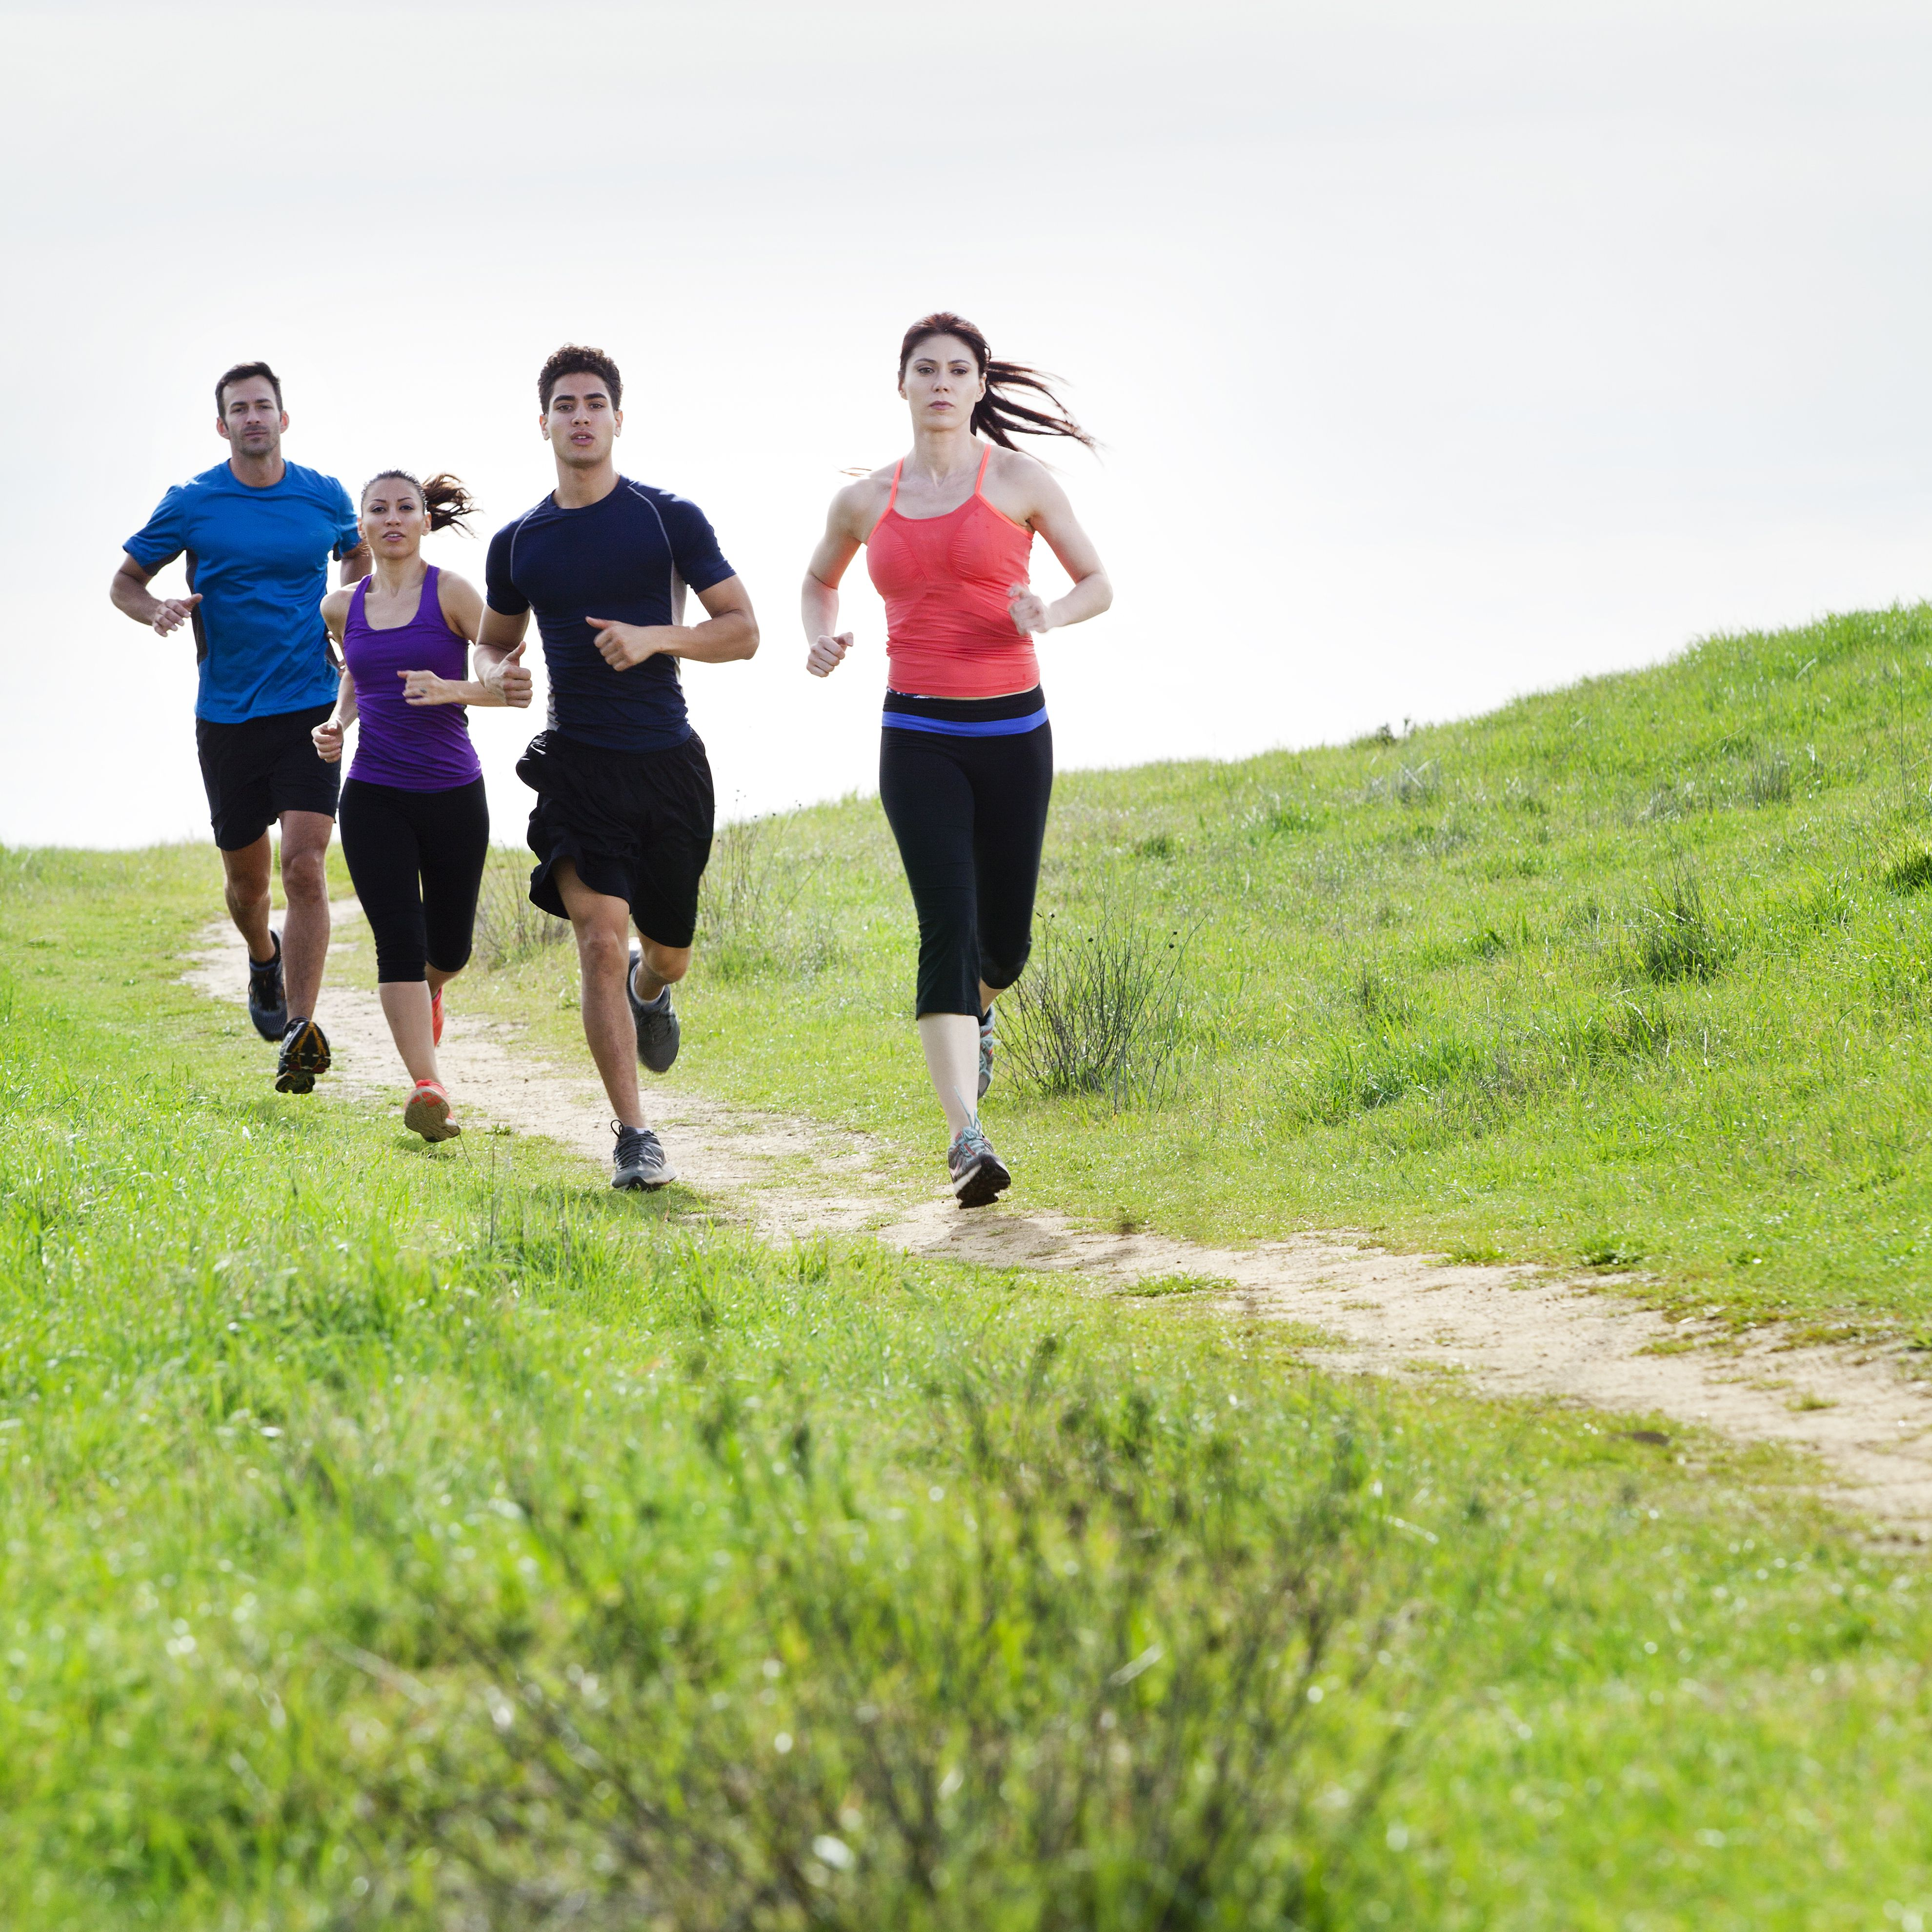 Runners on a dirt trail